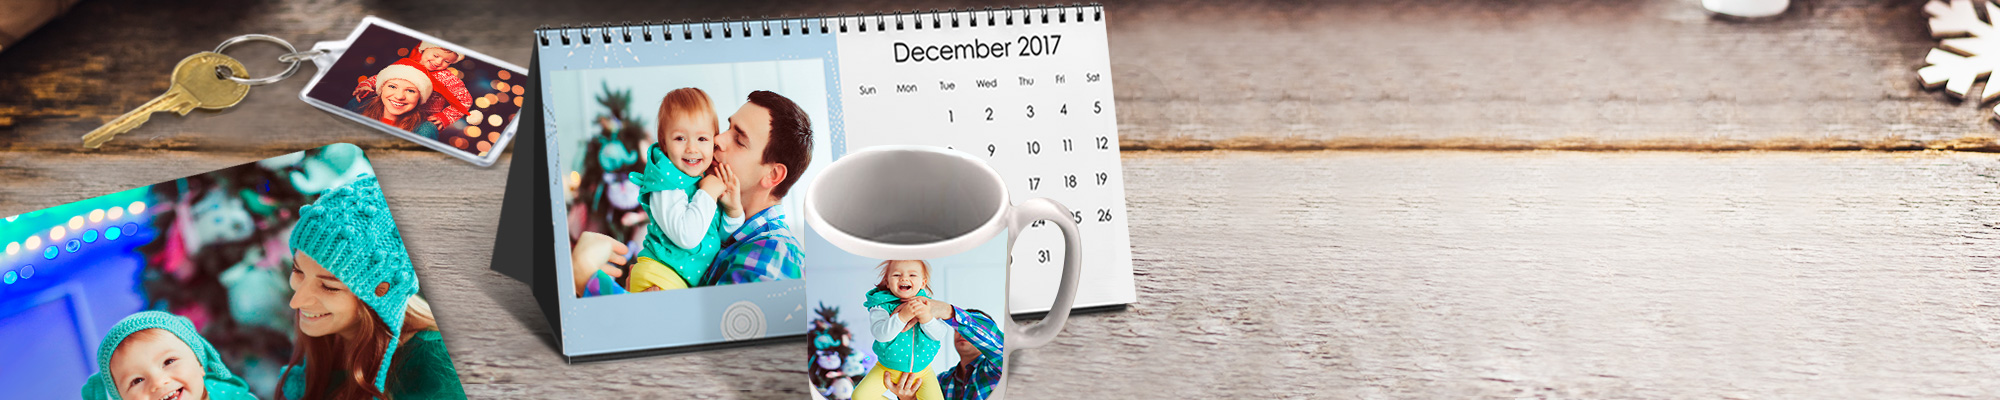 Secret Santa Photo Gift Ideas